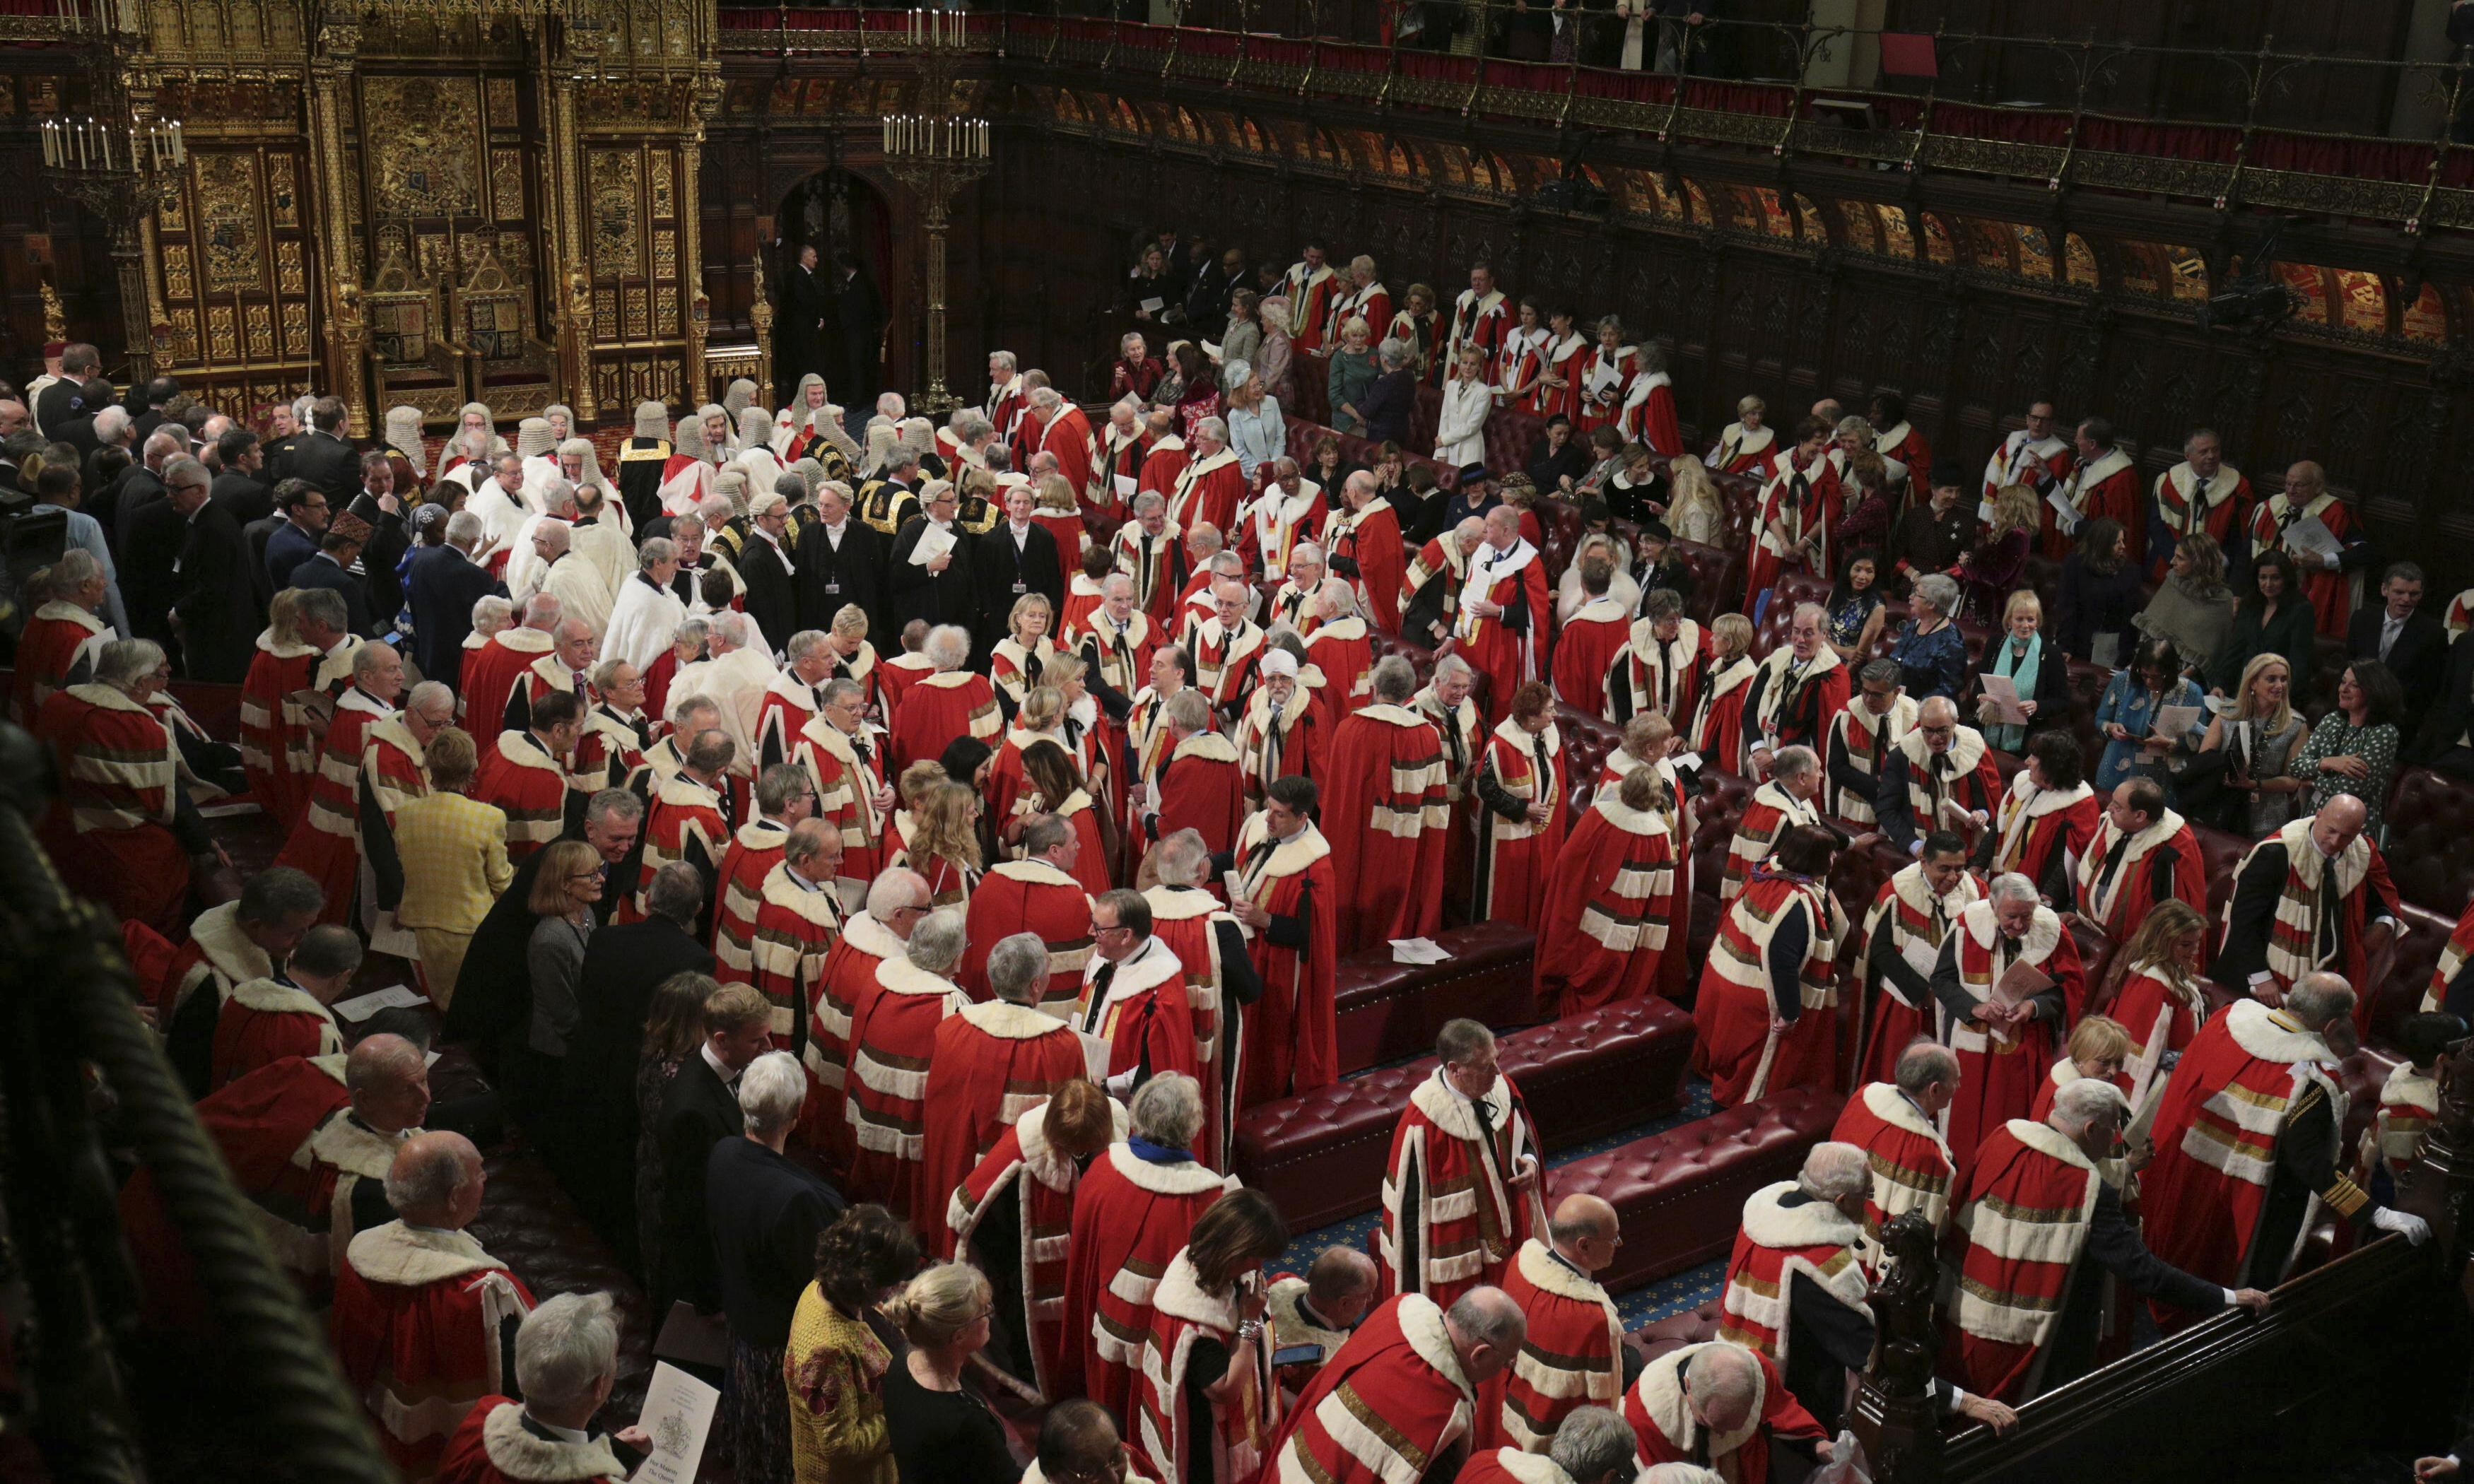 House of Lords may move out of London to 'reconnect' with public